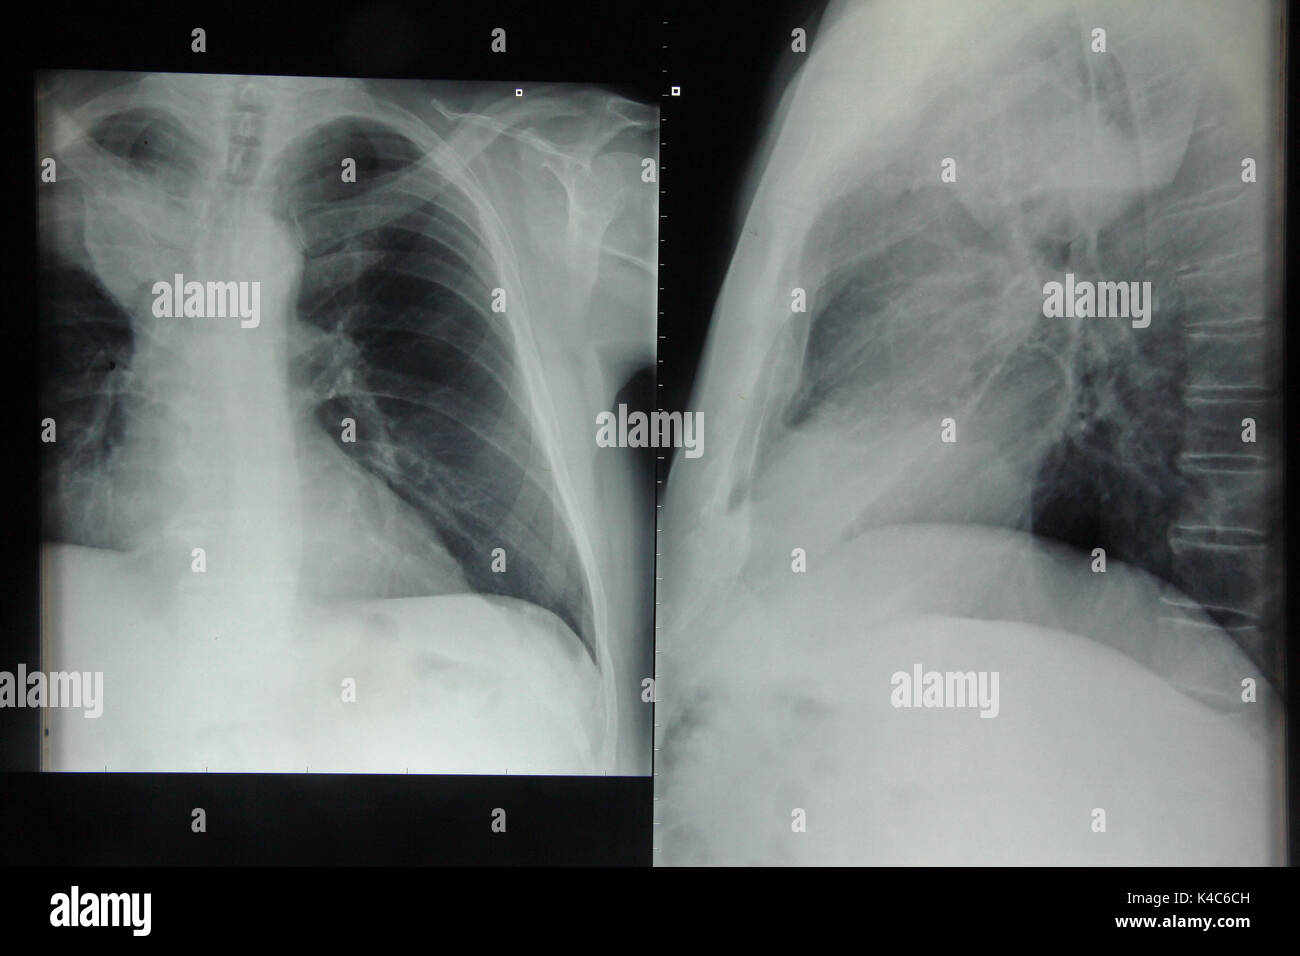 X-Ray Image Of A Lung - Stock Image